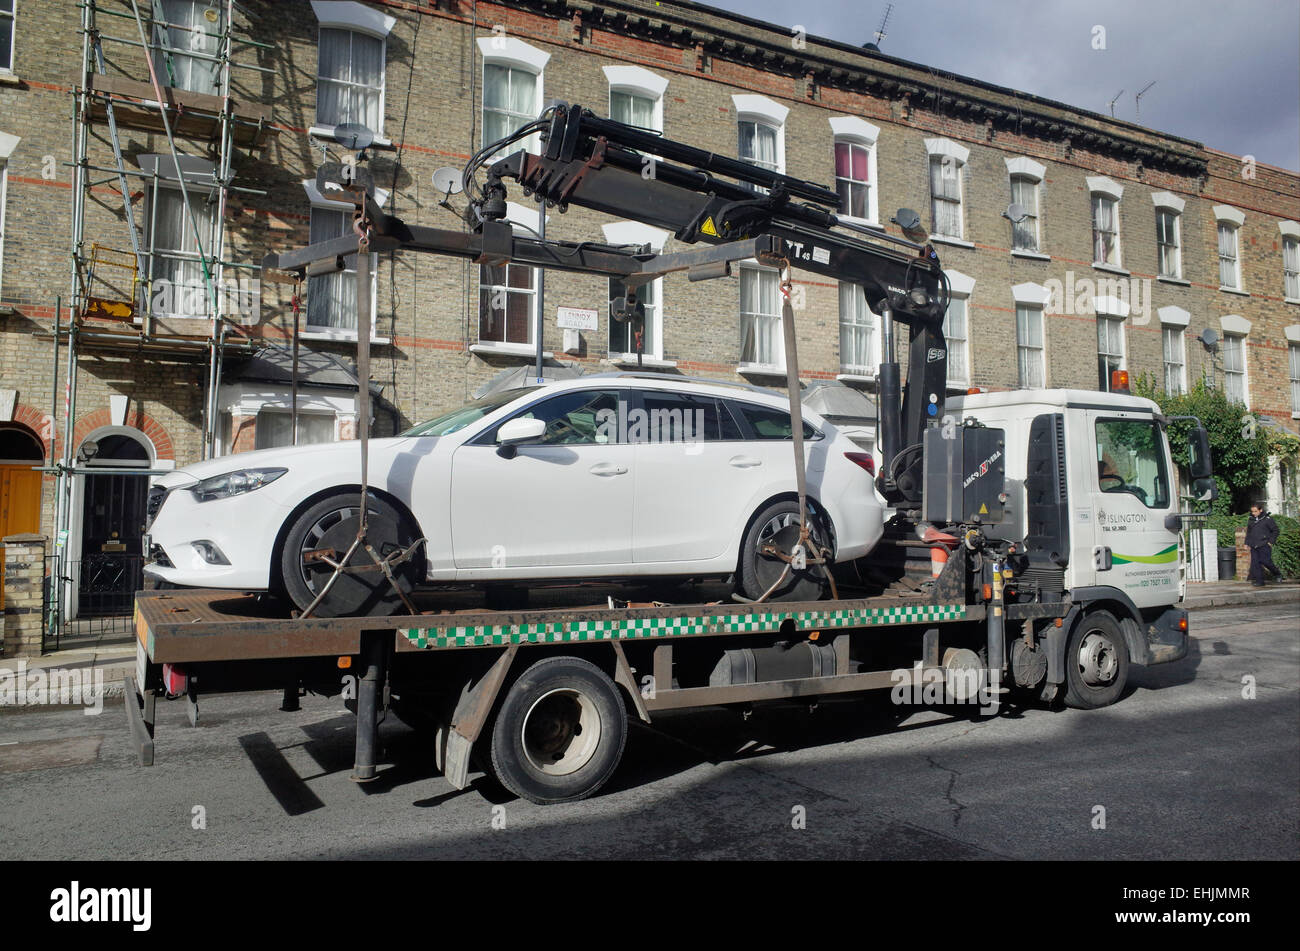 car being towed away on a flat bed truck by local council enforcement stock photo royalty free. Black Bedroom Furniture Sets. Home Design Ideas